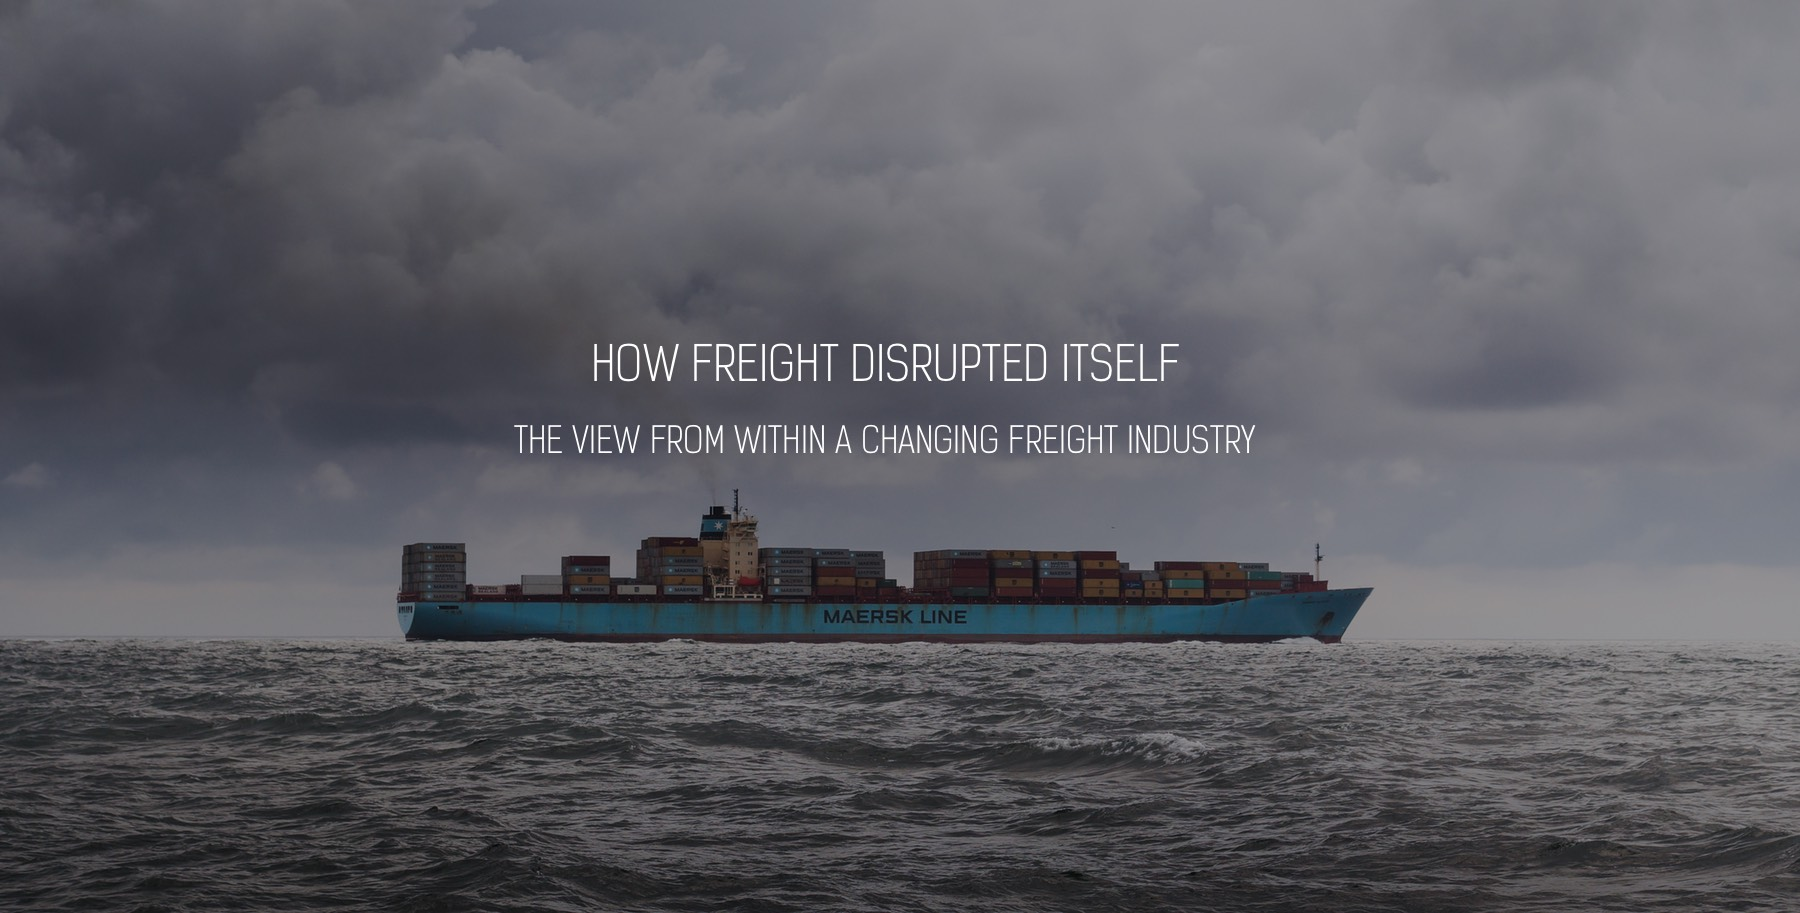 How freight disrupted itself